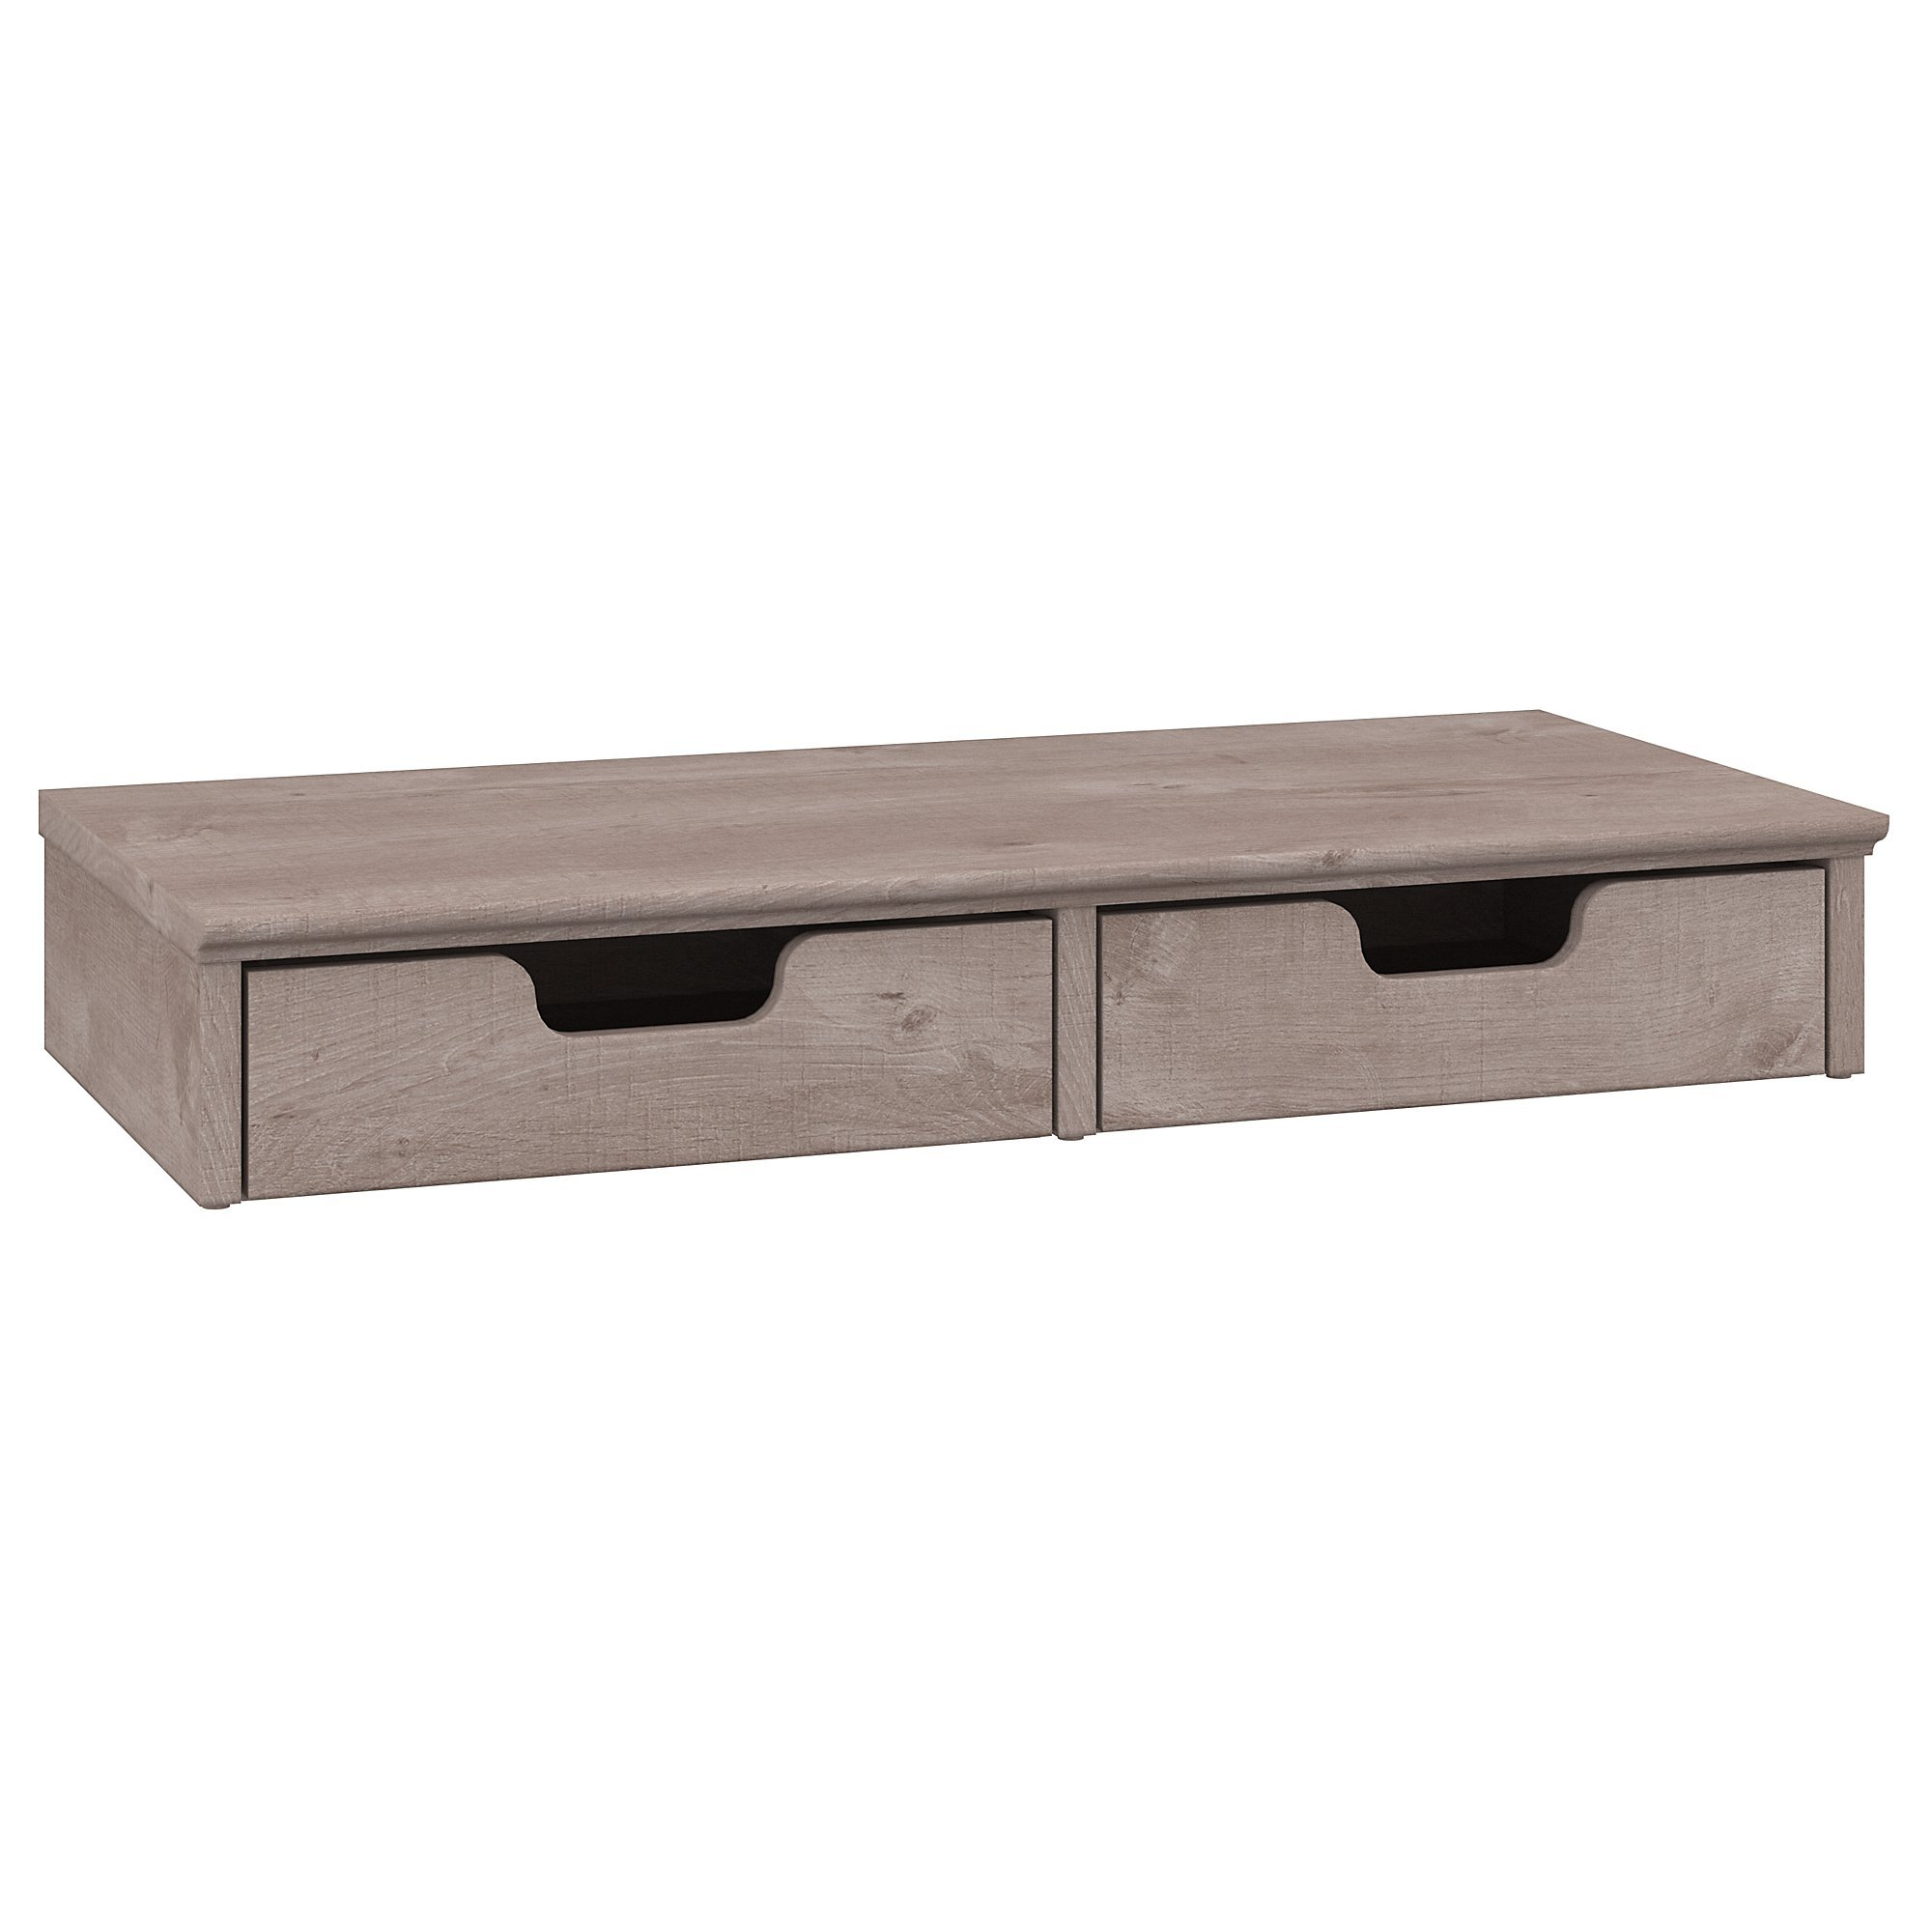 Bush Furniture Key West Desktop Organizer with Drawers in Washed Gray by Bush Furniture